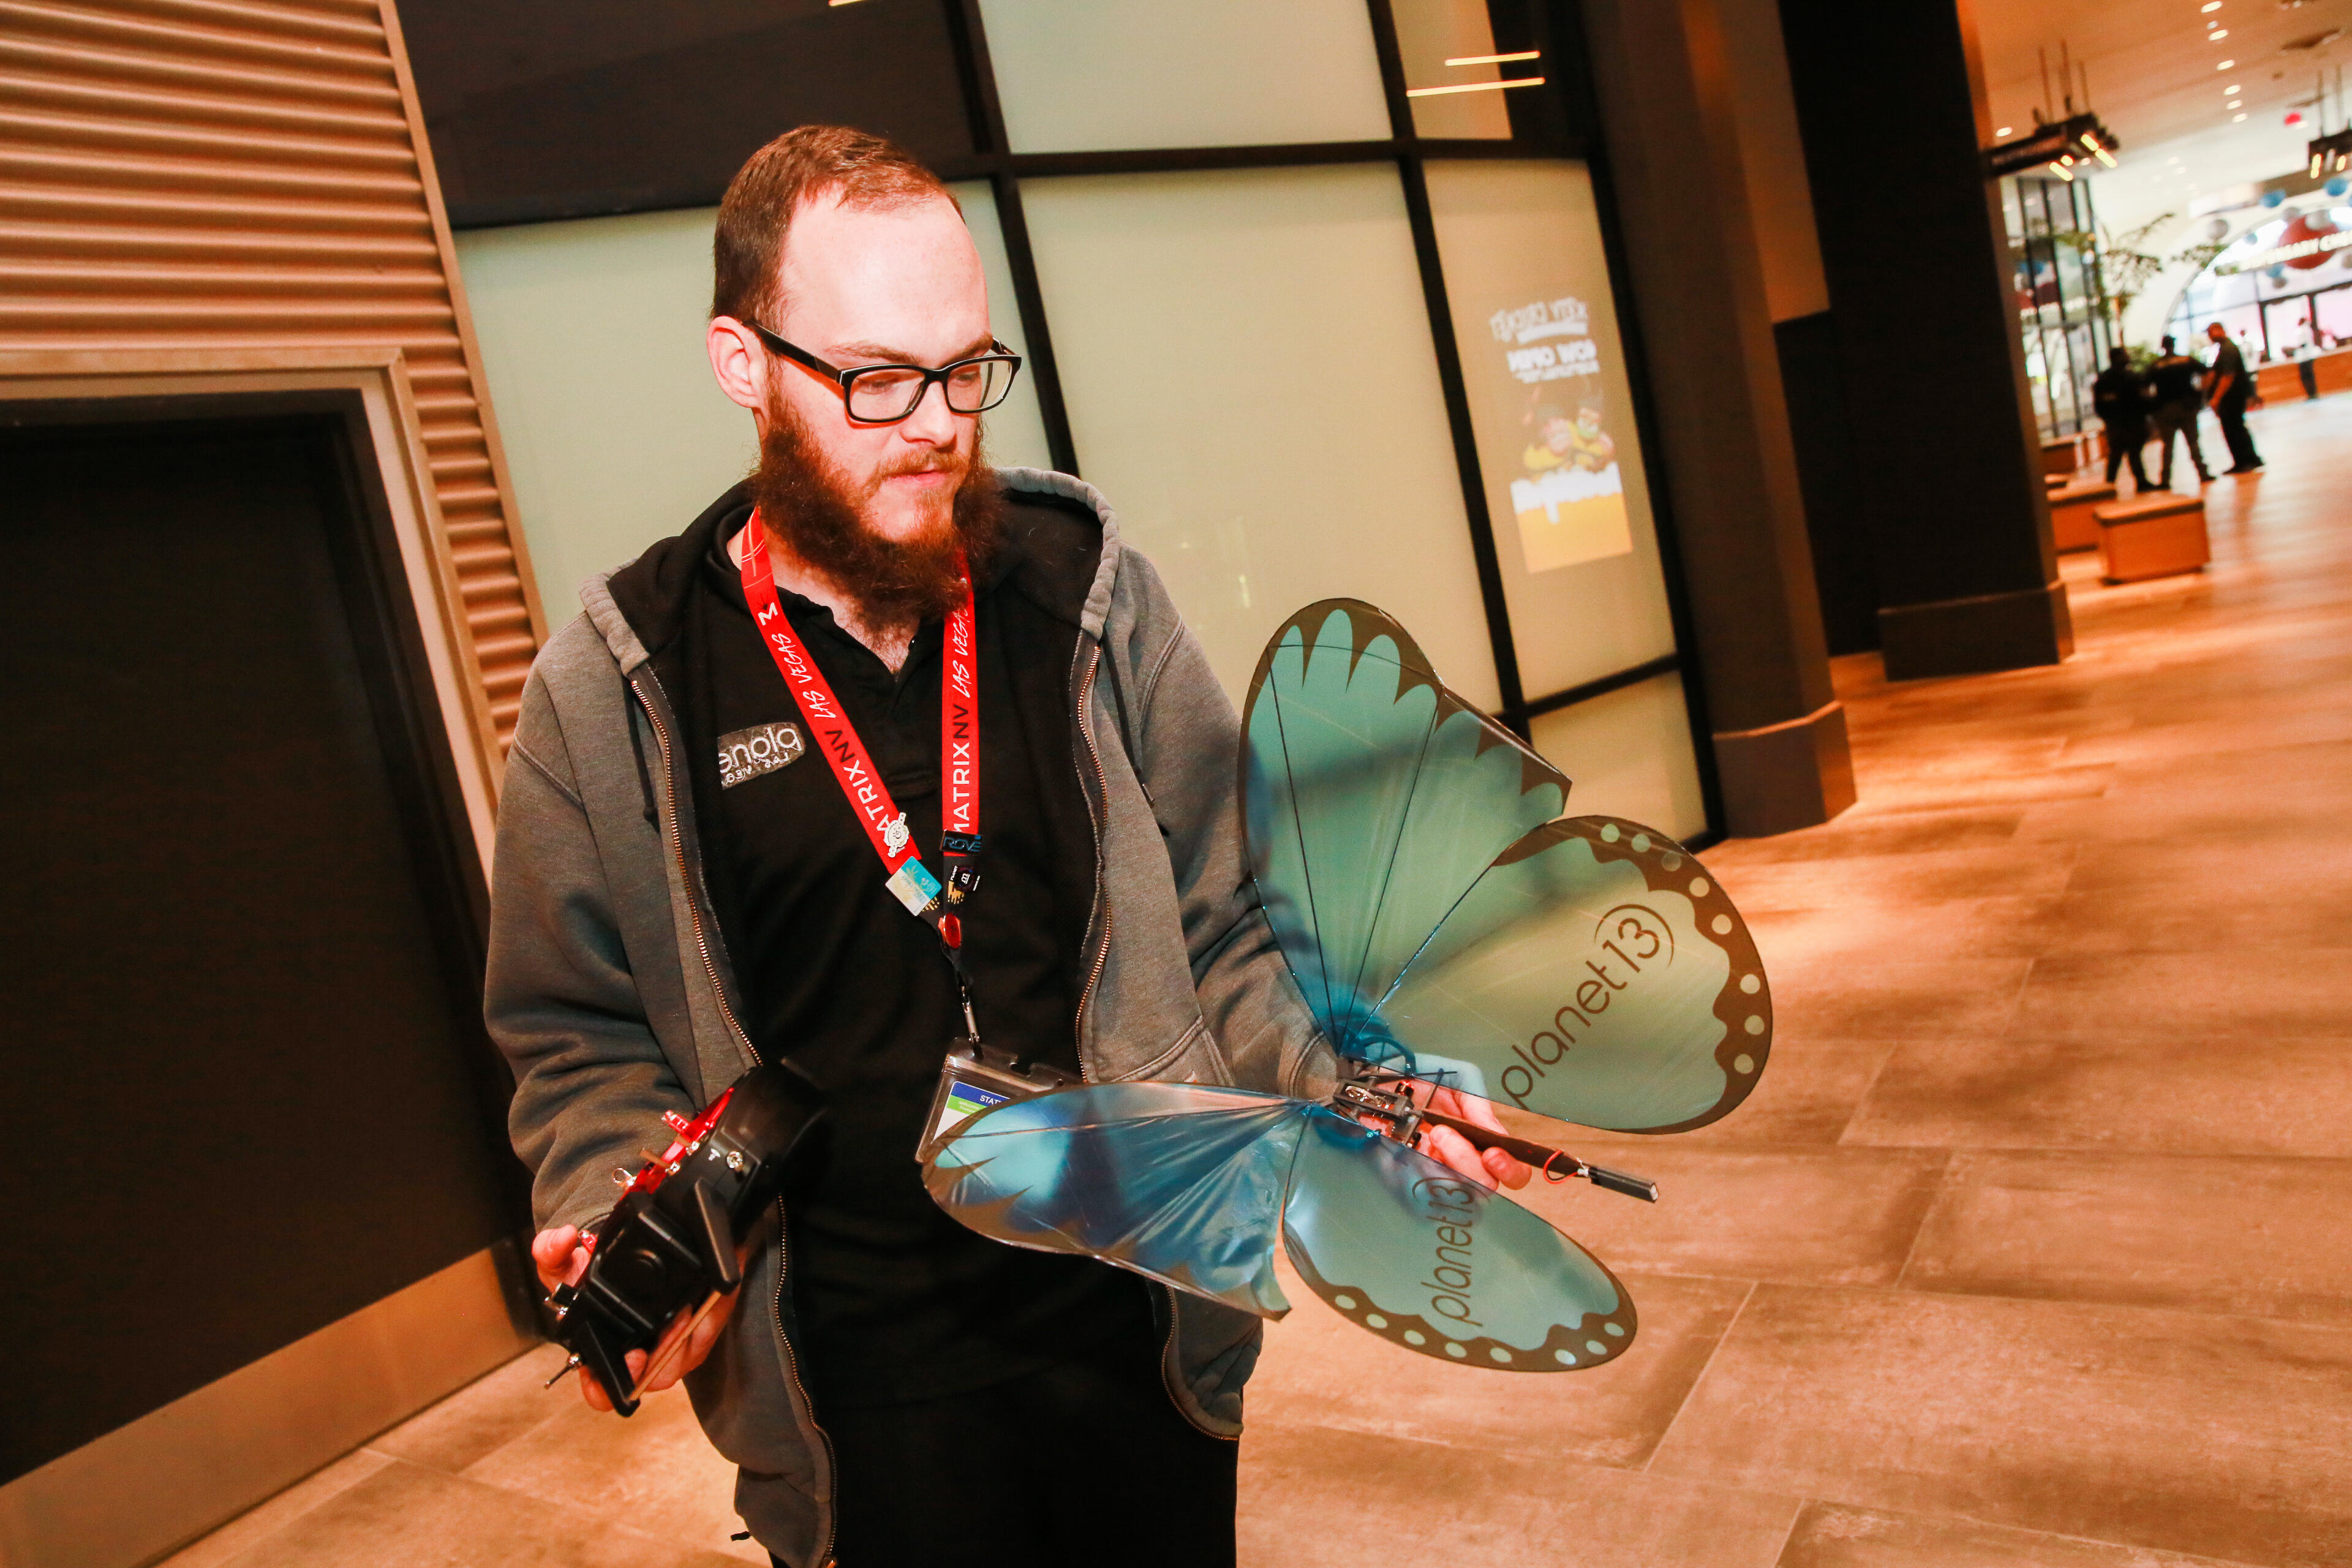 """Known as """"the drone guy,"""" this staff member's job is to run a butterfly drone over the lobby at half-past the hour throughout the day."""